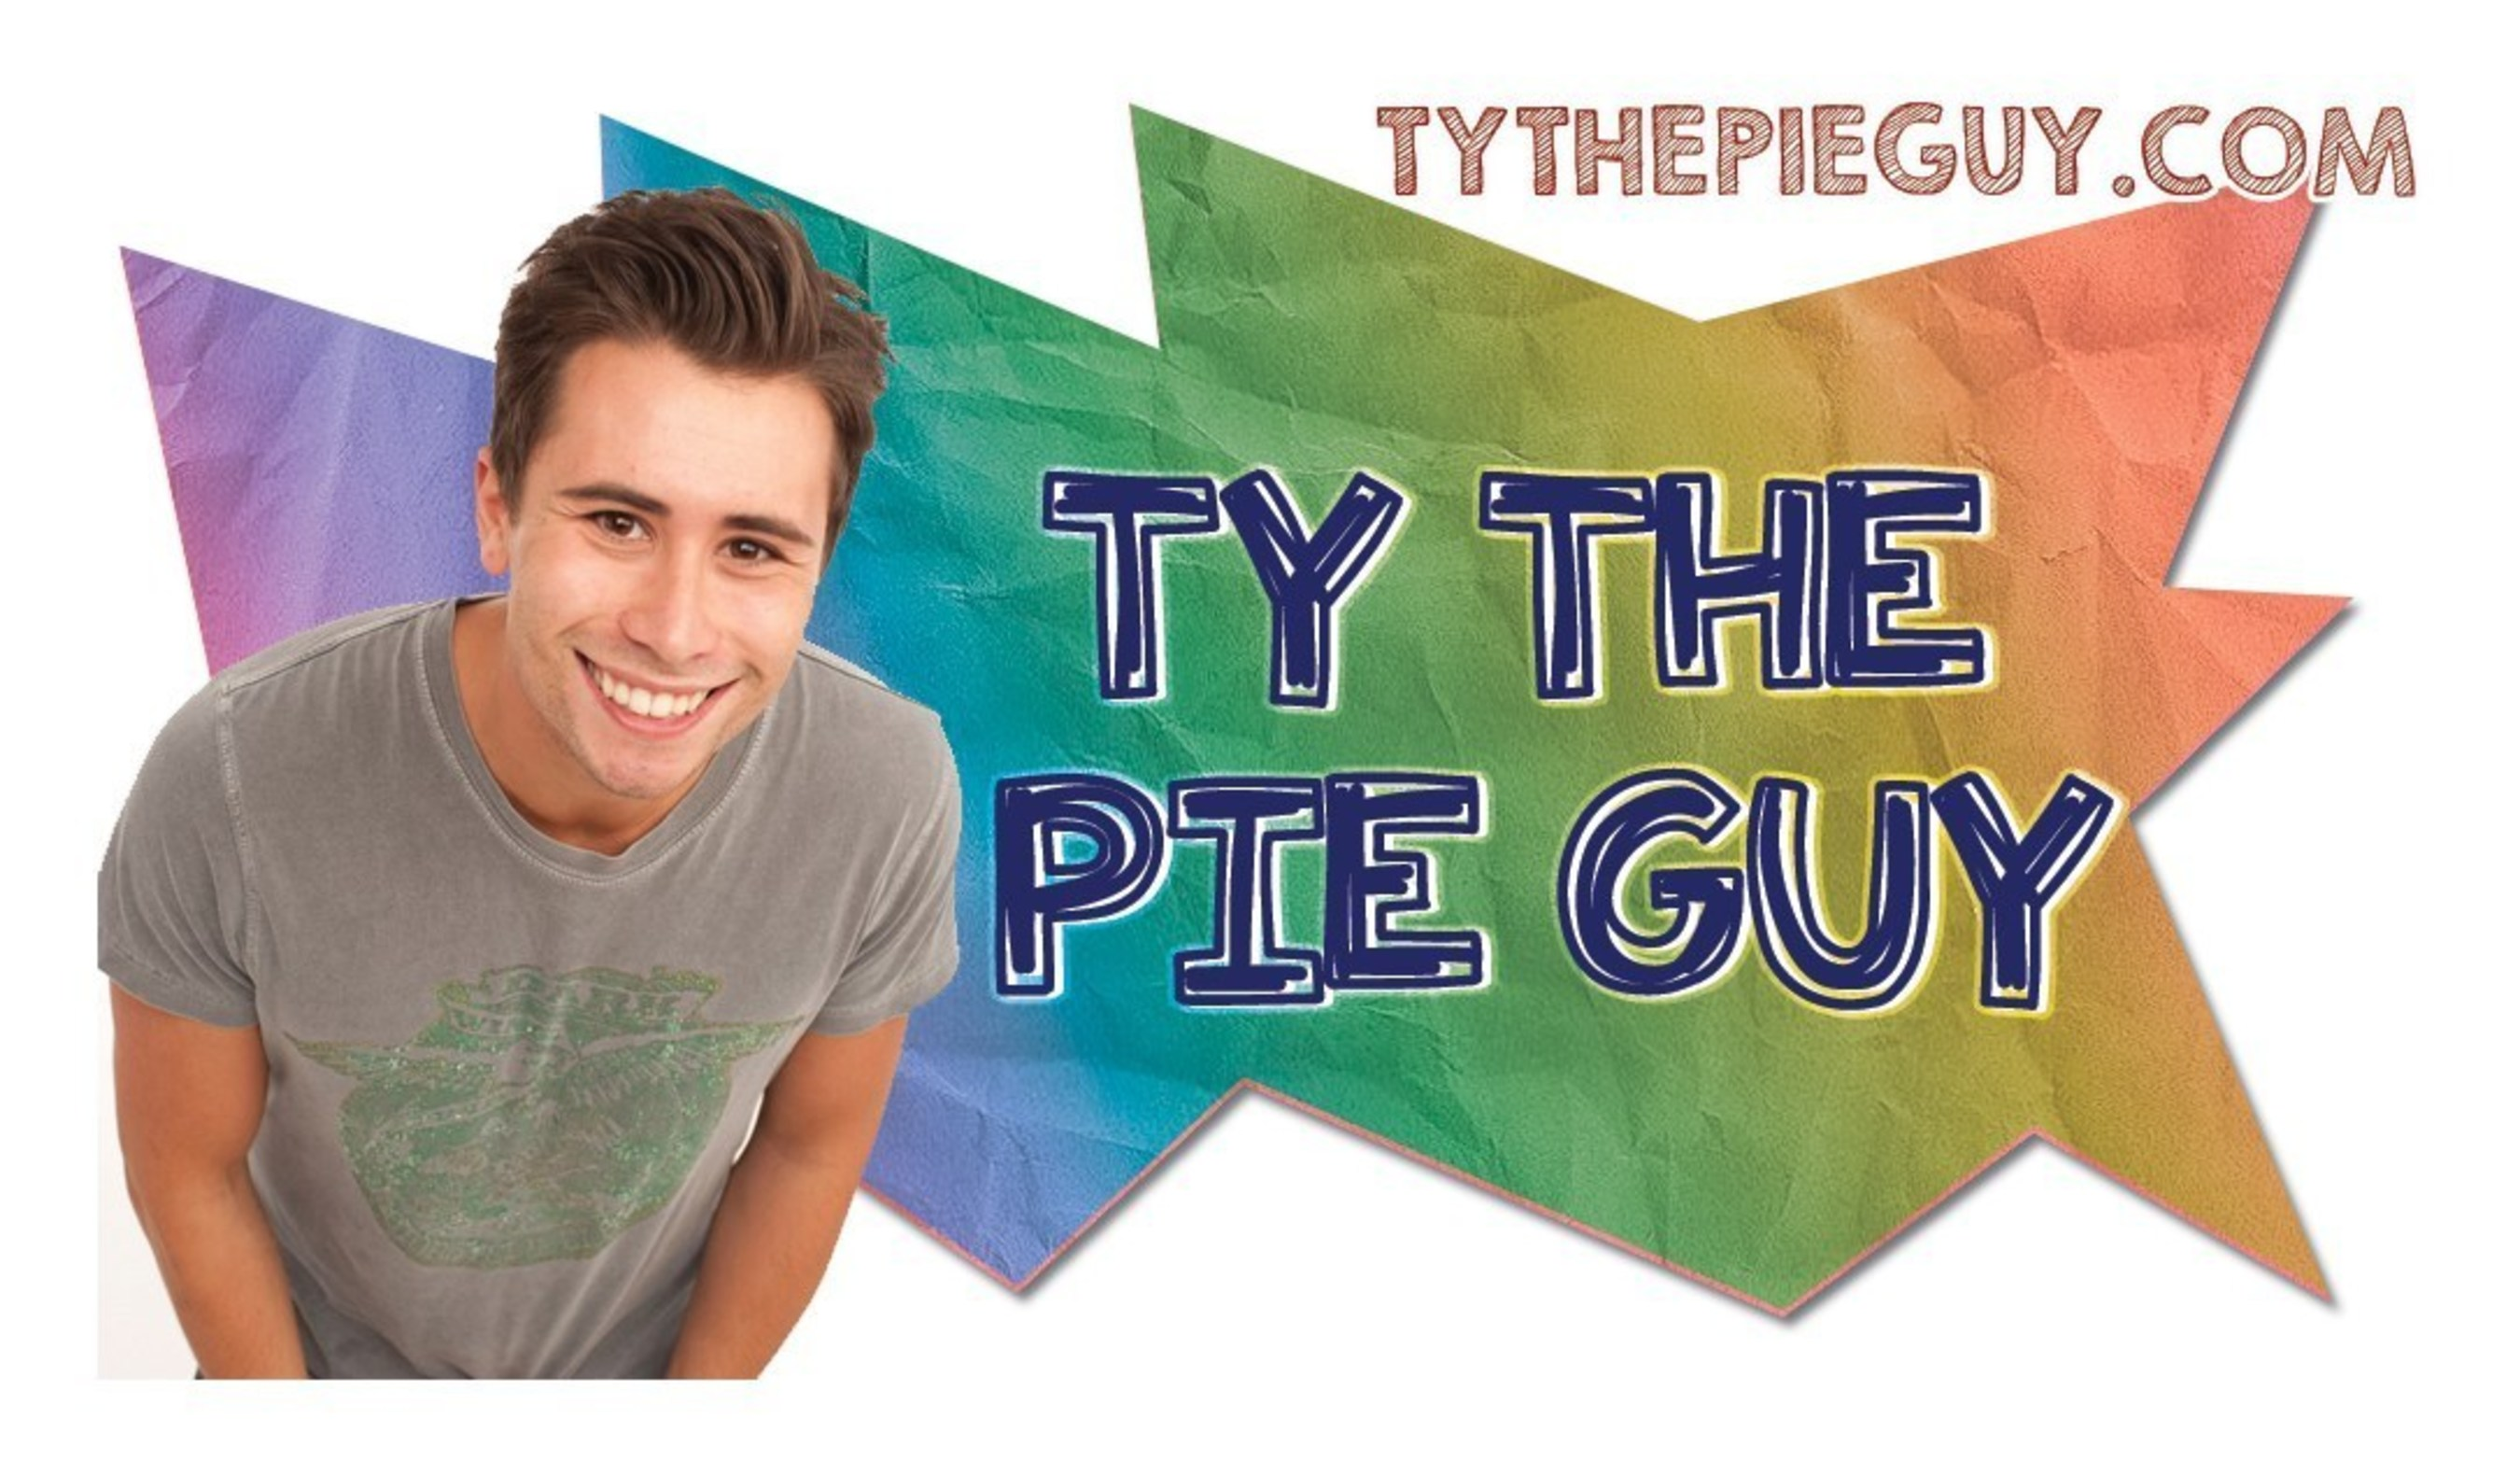 Ty The Pie Guy is a new comedy cooking show for kids and families